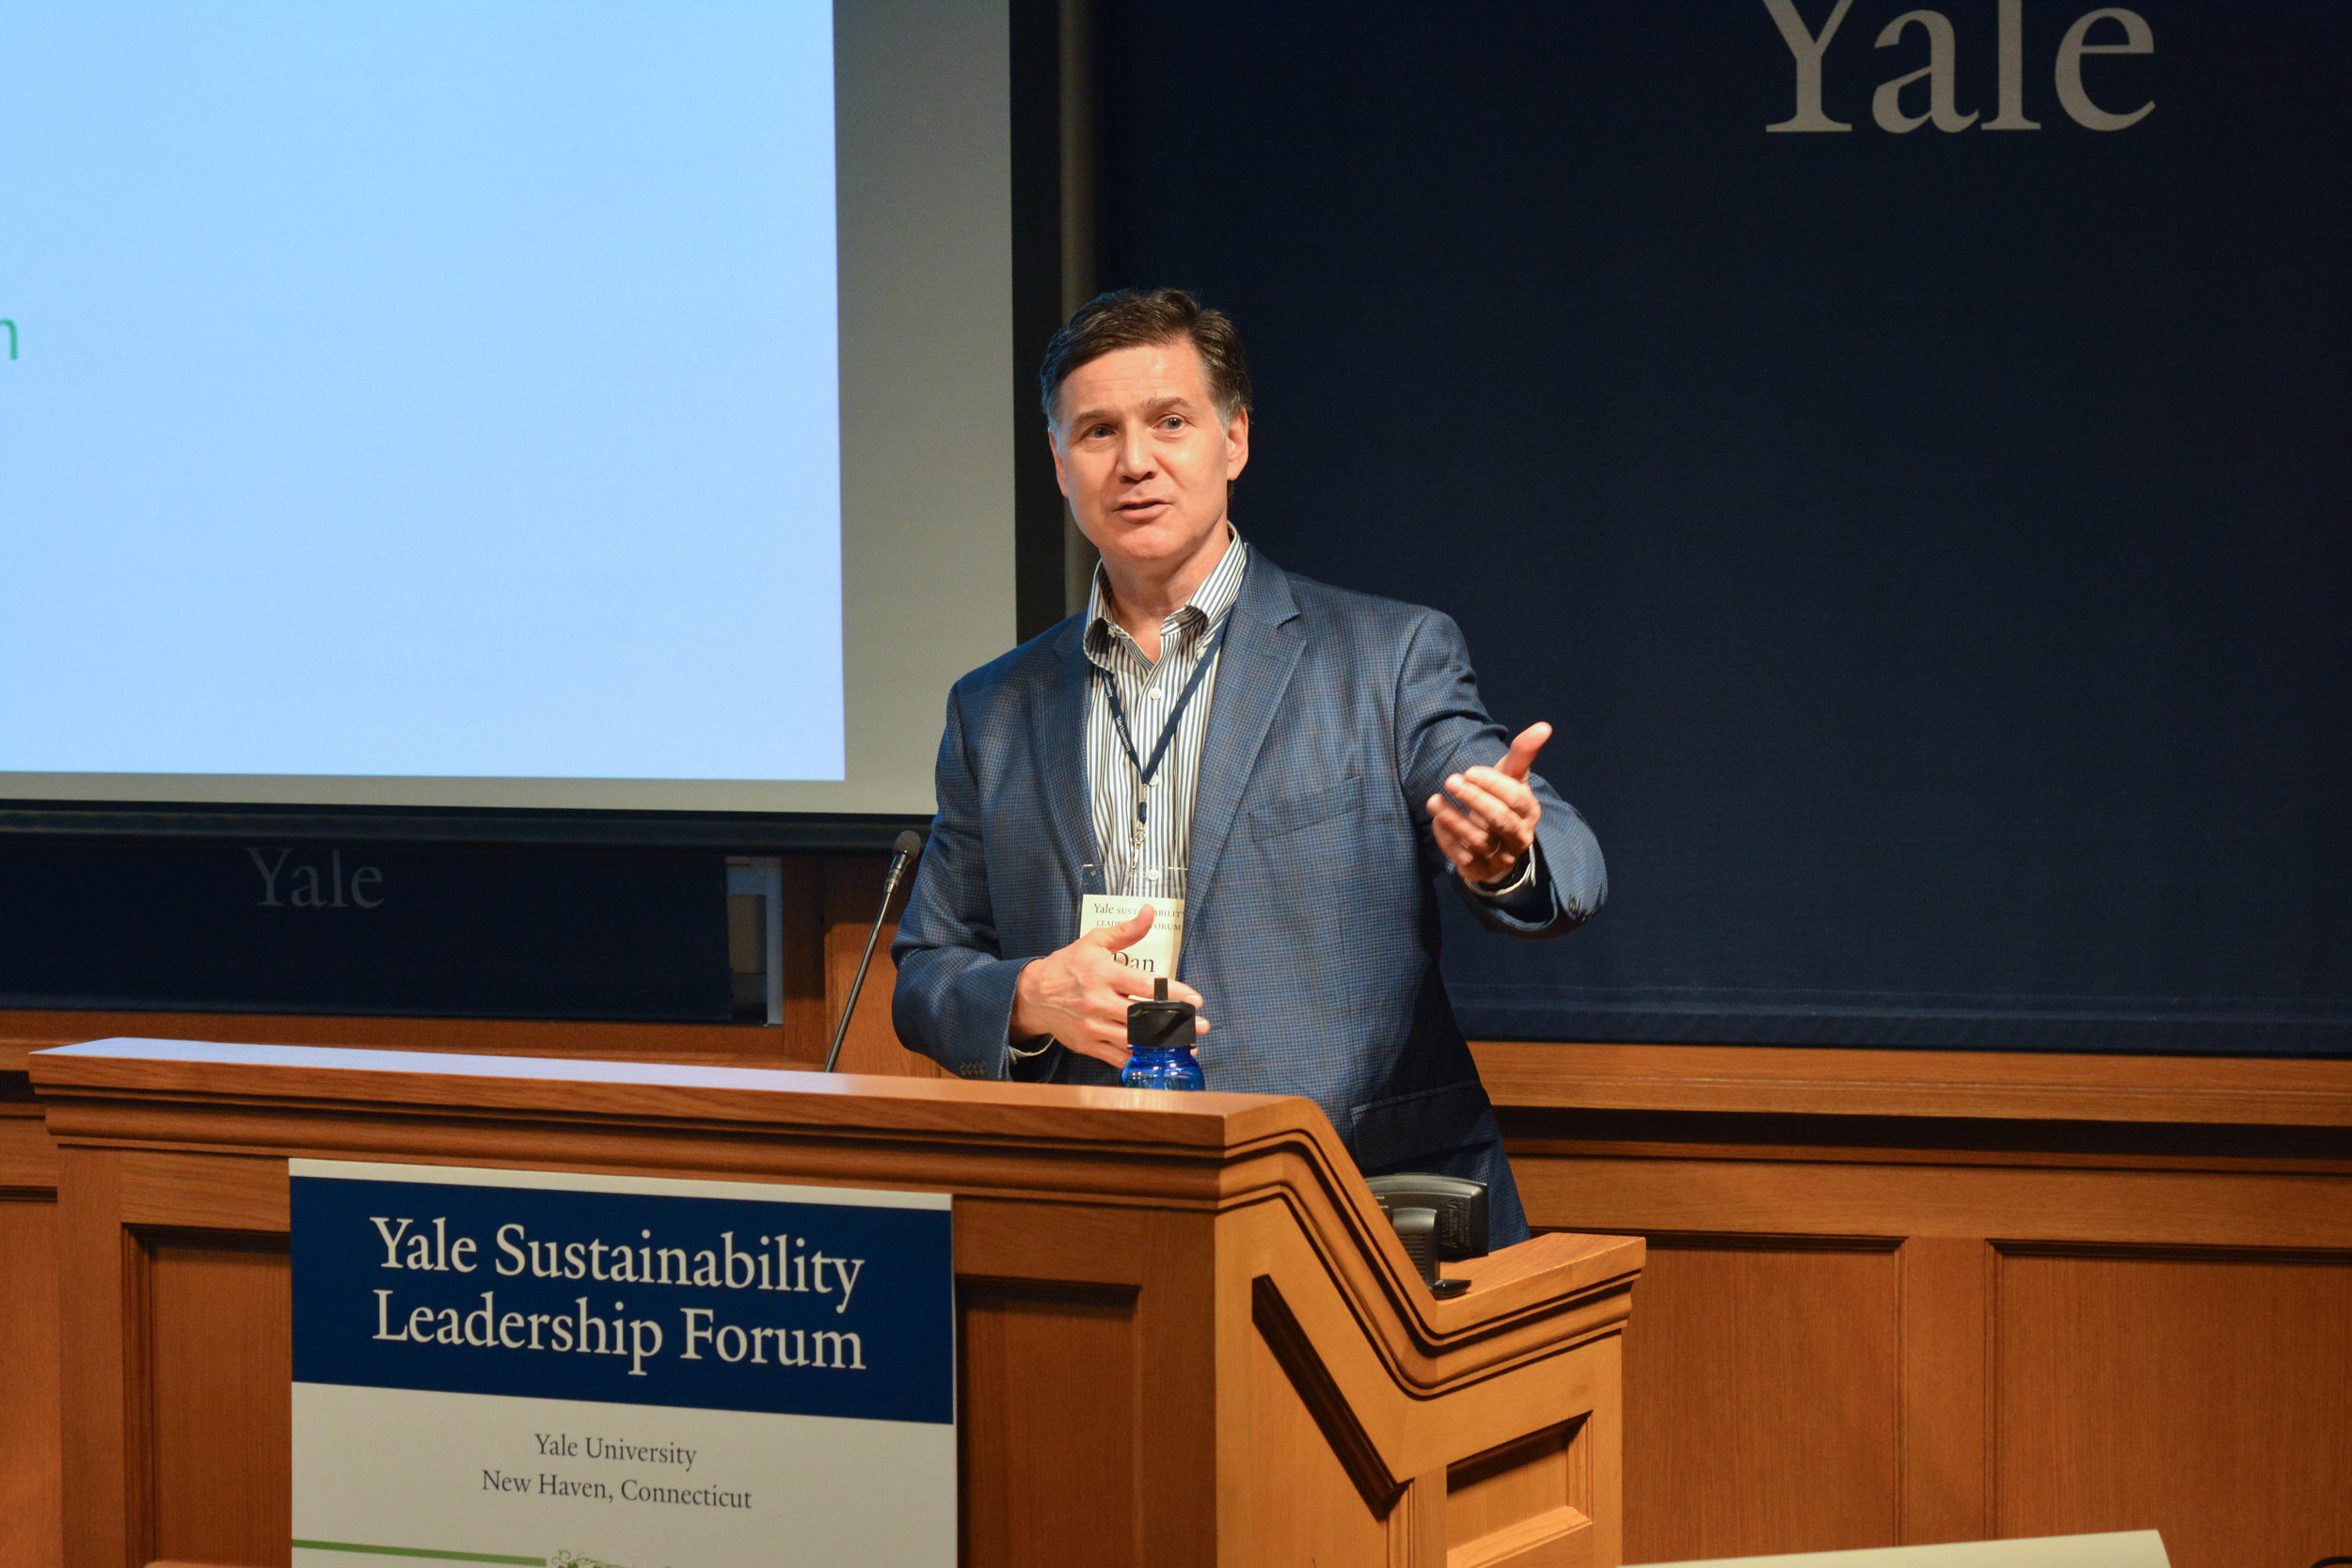 Yale Sustainability Leadership Forum Speaker at Greenberg